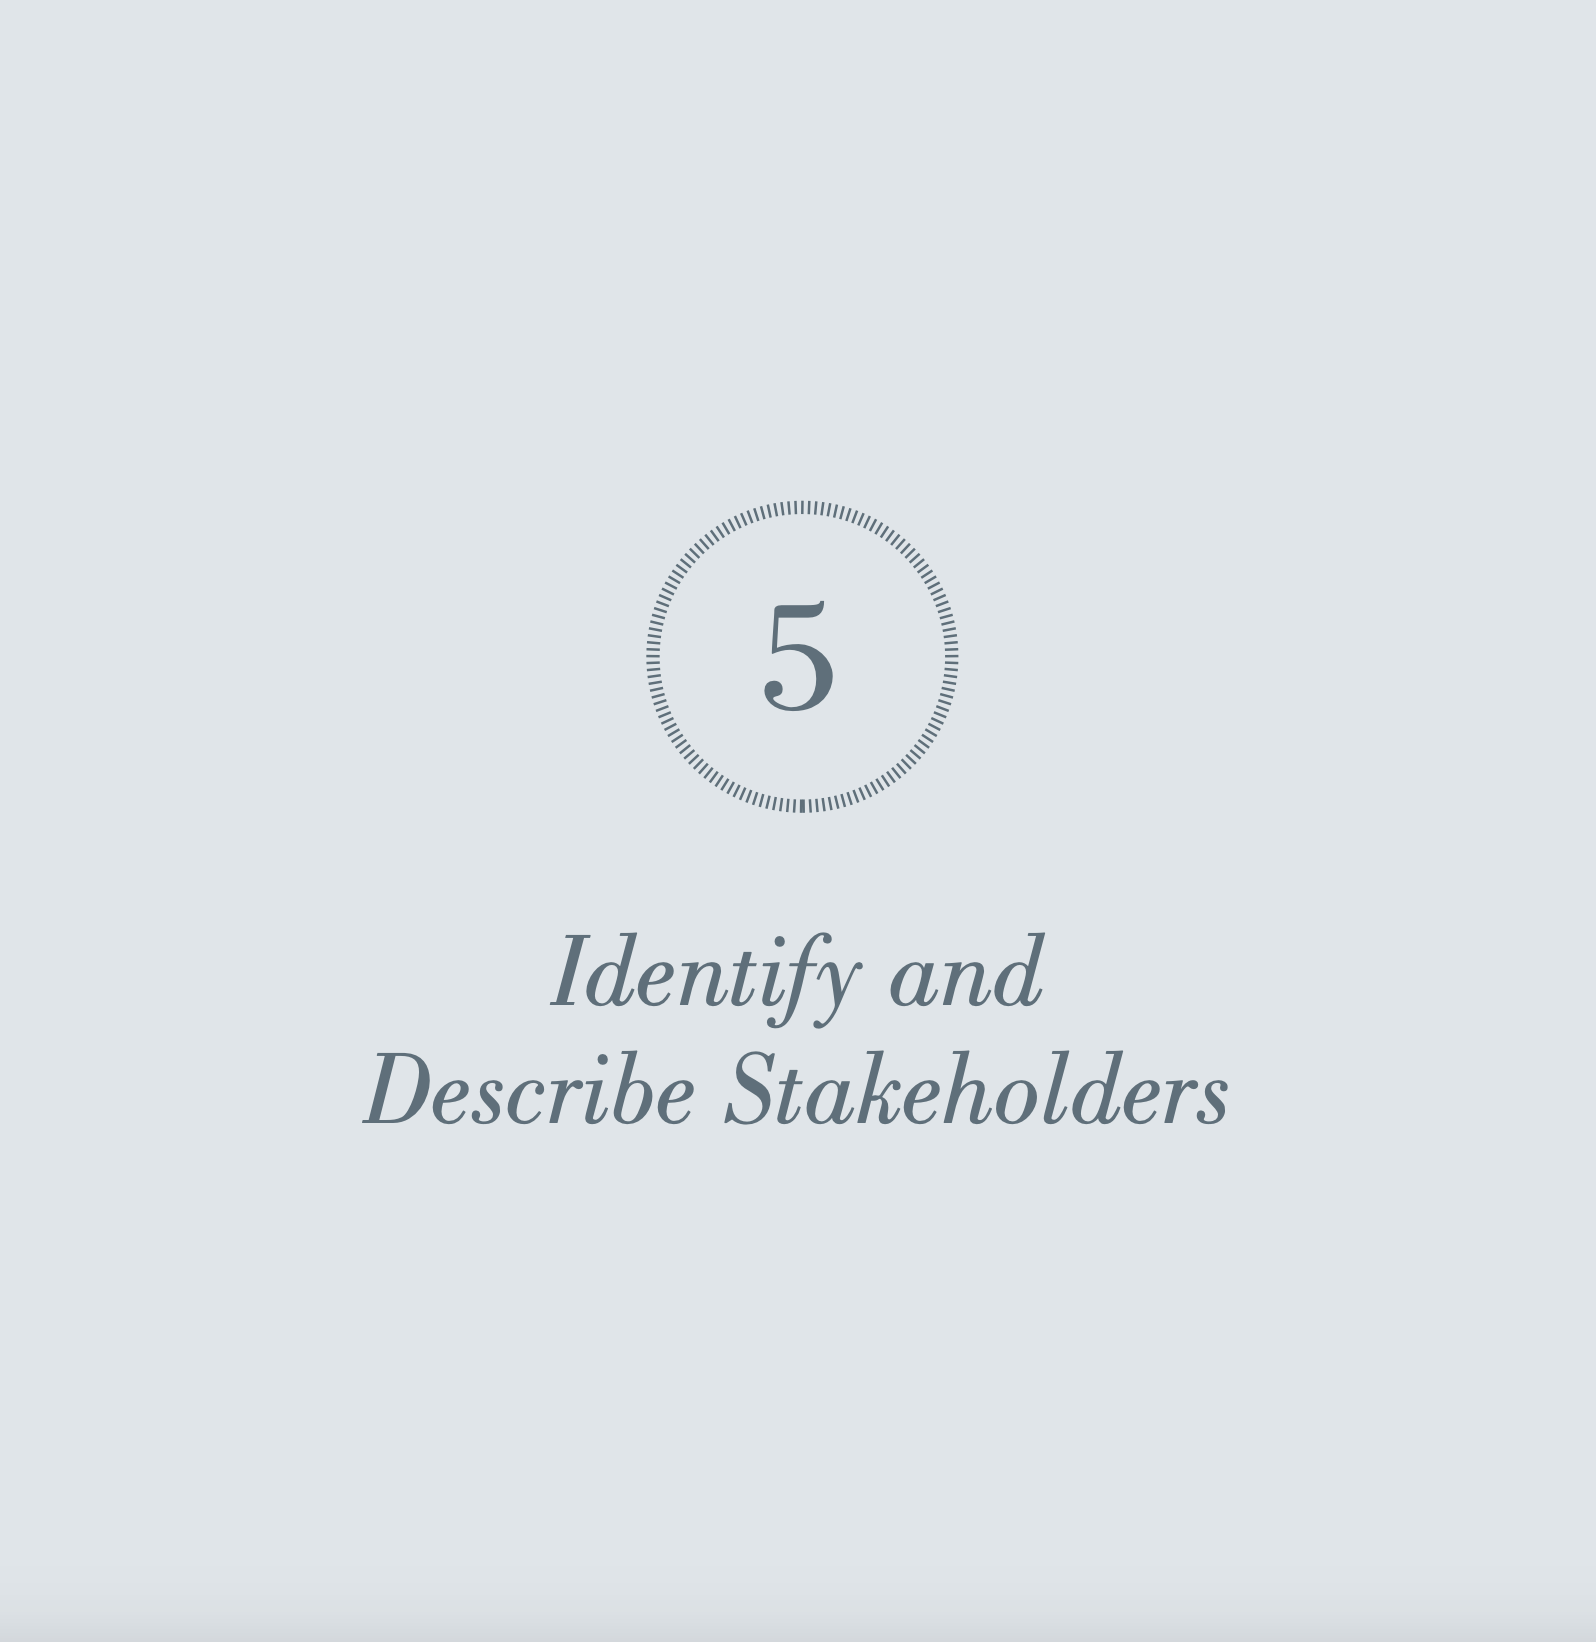 Identify and Describe Stakeholders